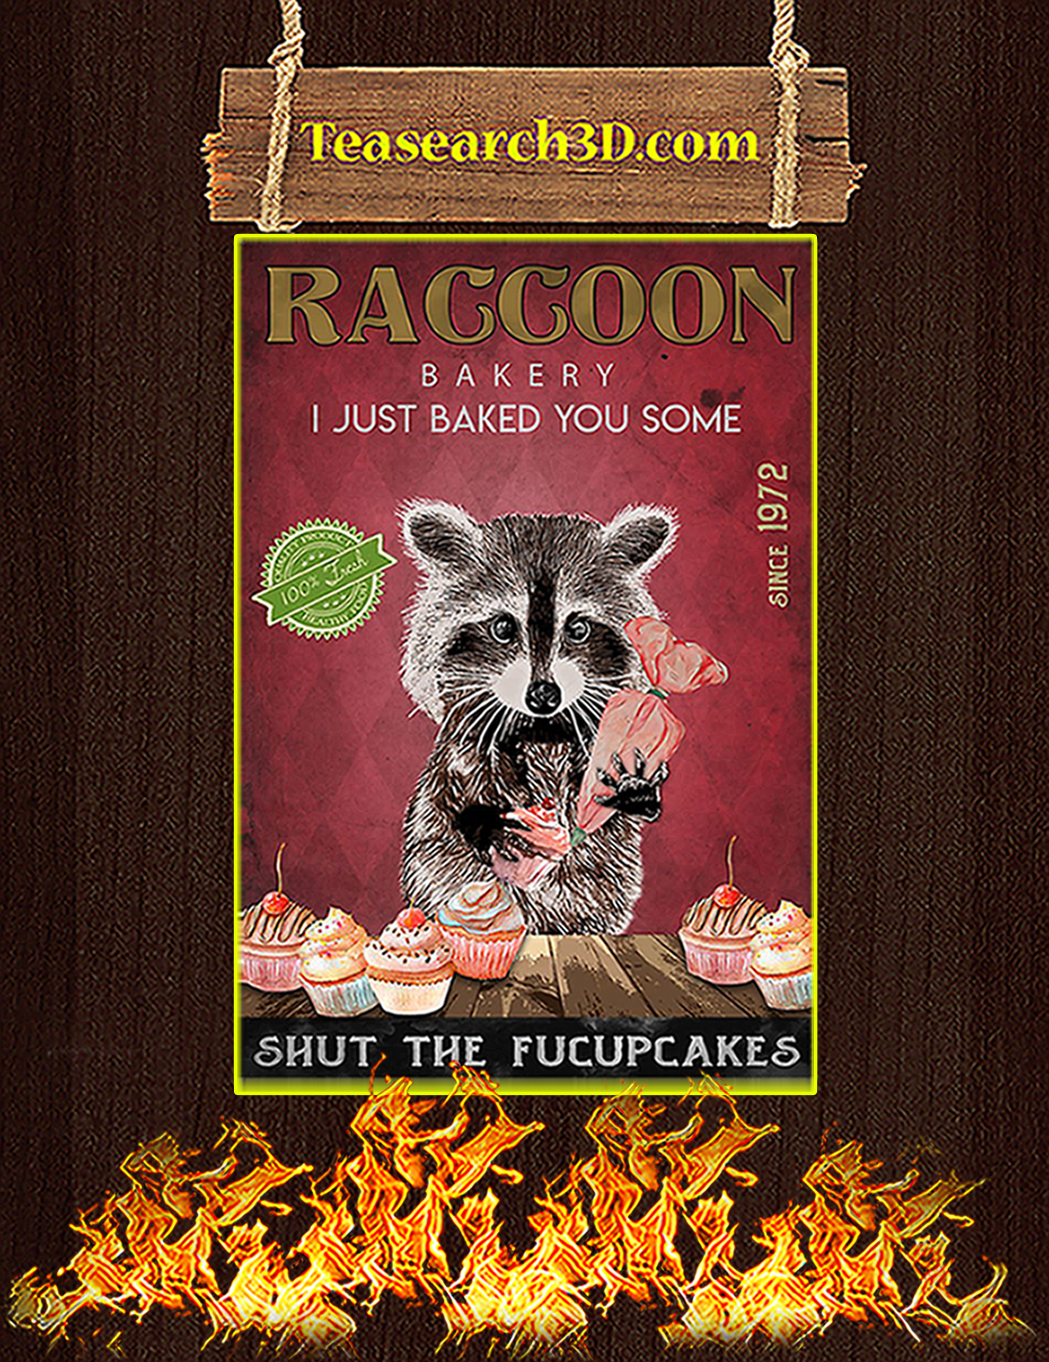 Raccoon bakery I just baked you some poster A1